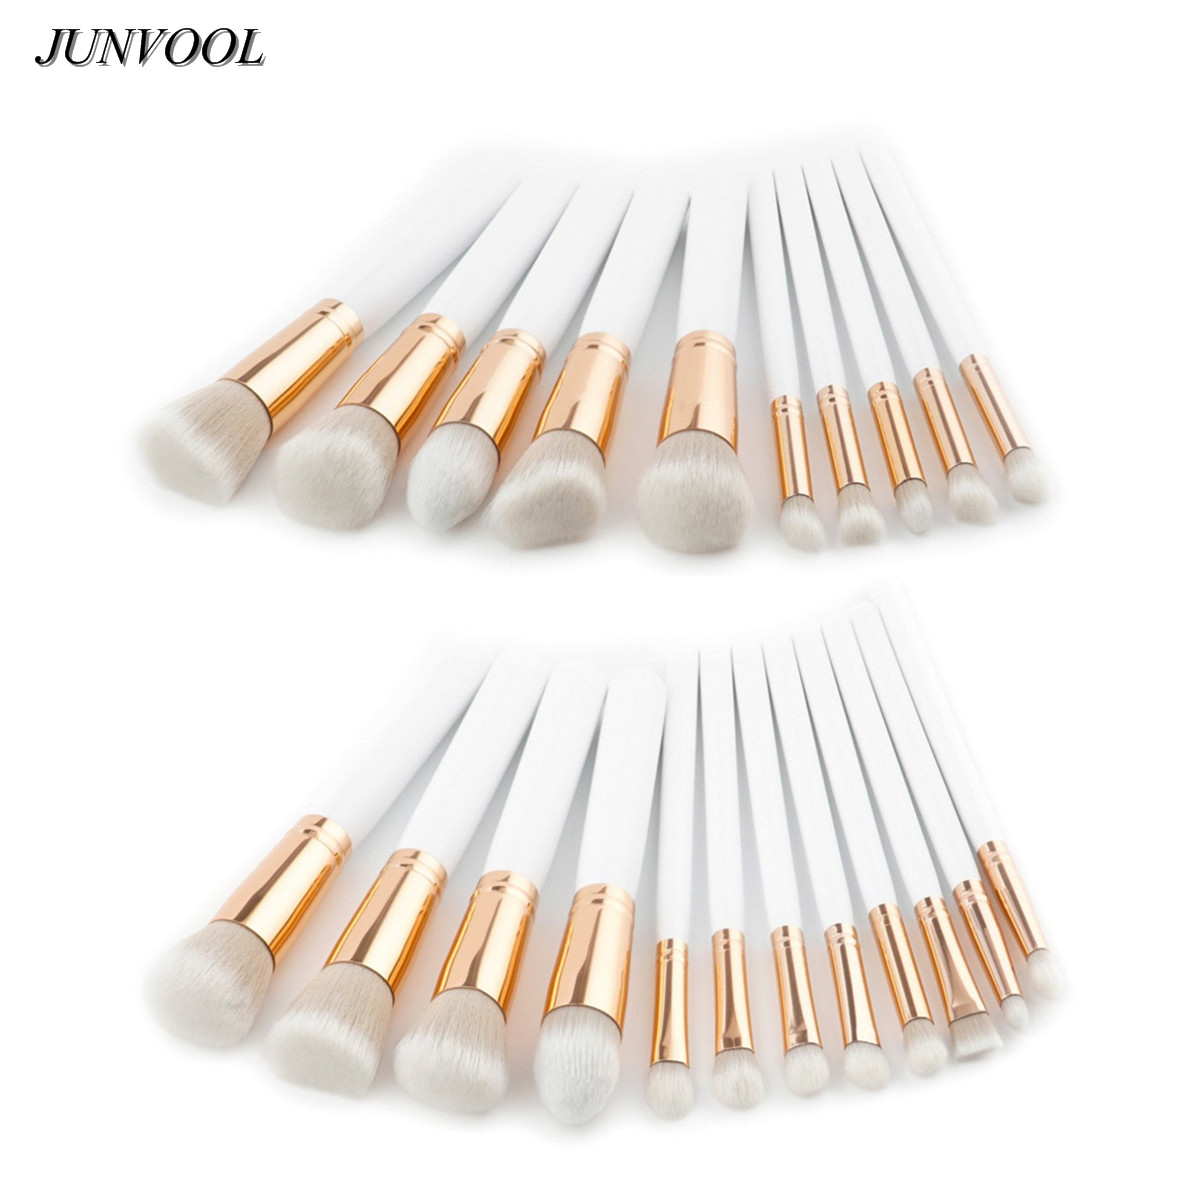 White Gold Makeup Brushes Cosmetic Blending Pencil Professional Soft Cosmetic Eye Eyebrow Shadow Make Up Brush Set Tool Kit katur 2pcs t15 w16w led reverse light bulbs 920 921 912 canbus 4014 45smd highlight led backup parking light lamp bulbs dc12v